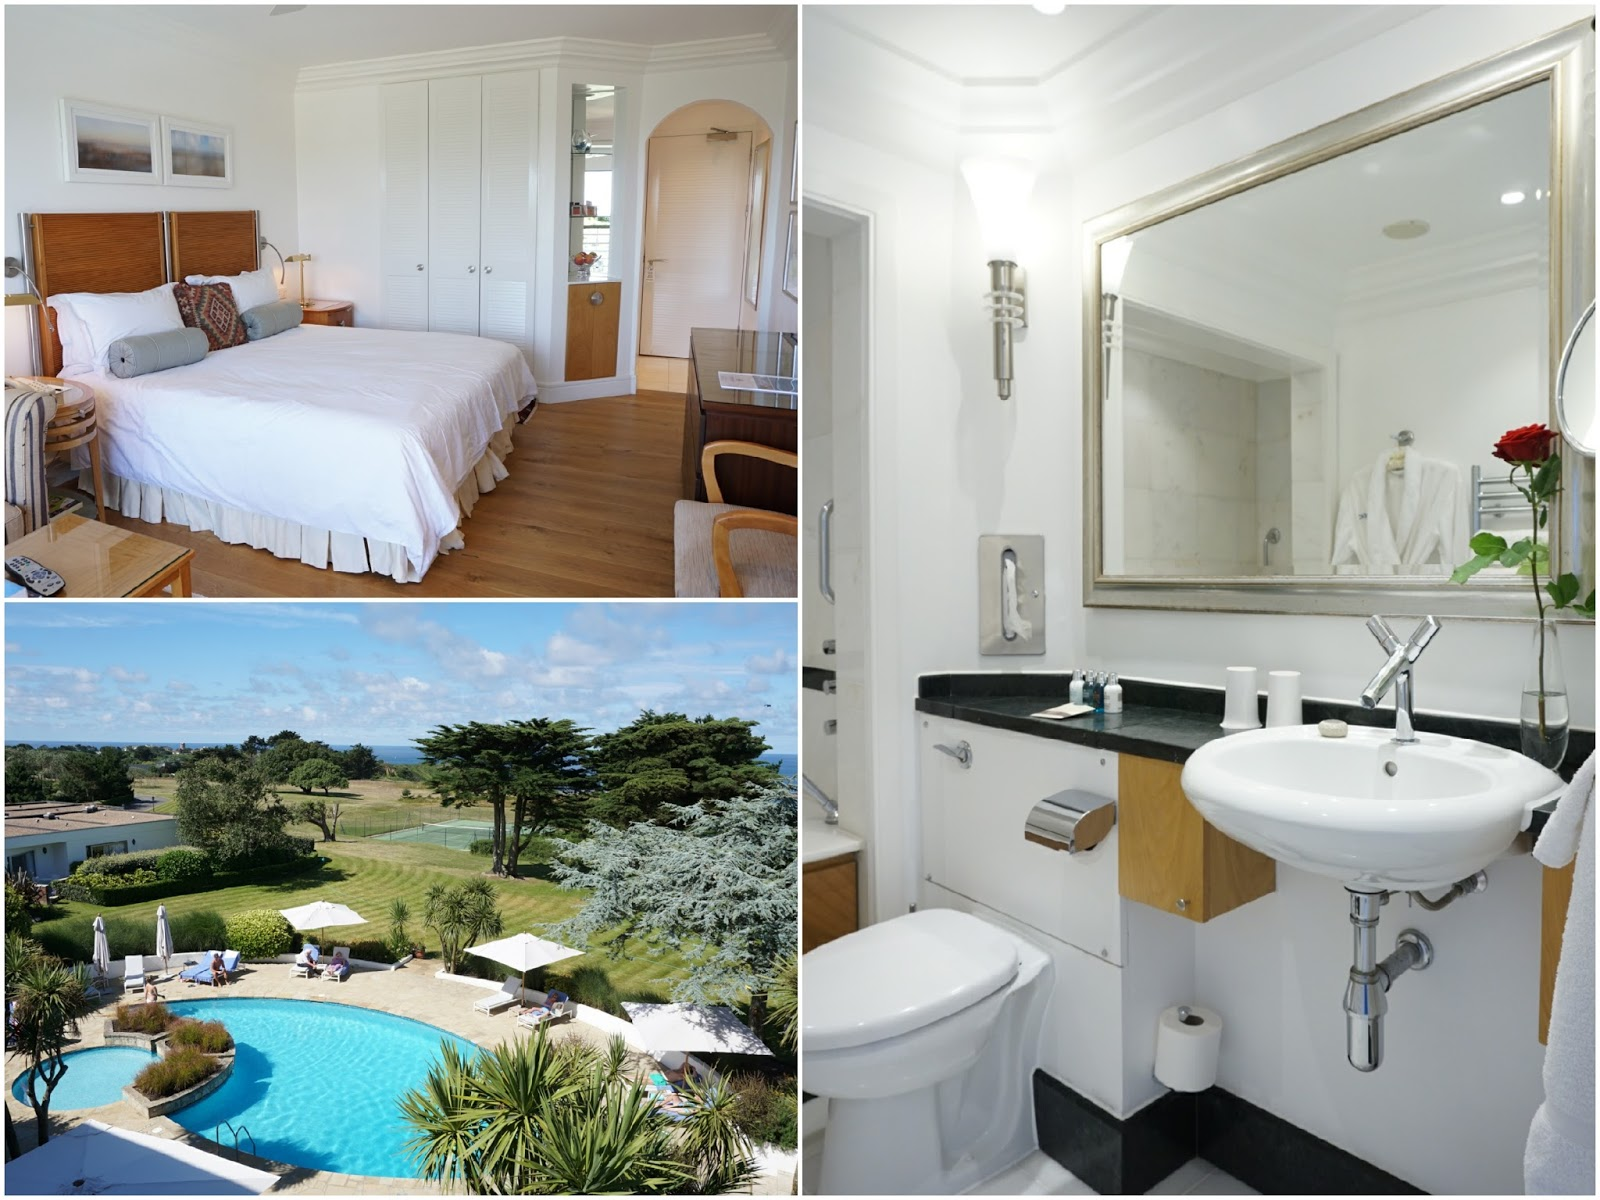 channel islands | review of the atlantic hotel, jersey